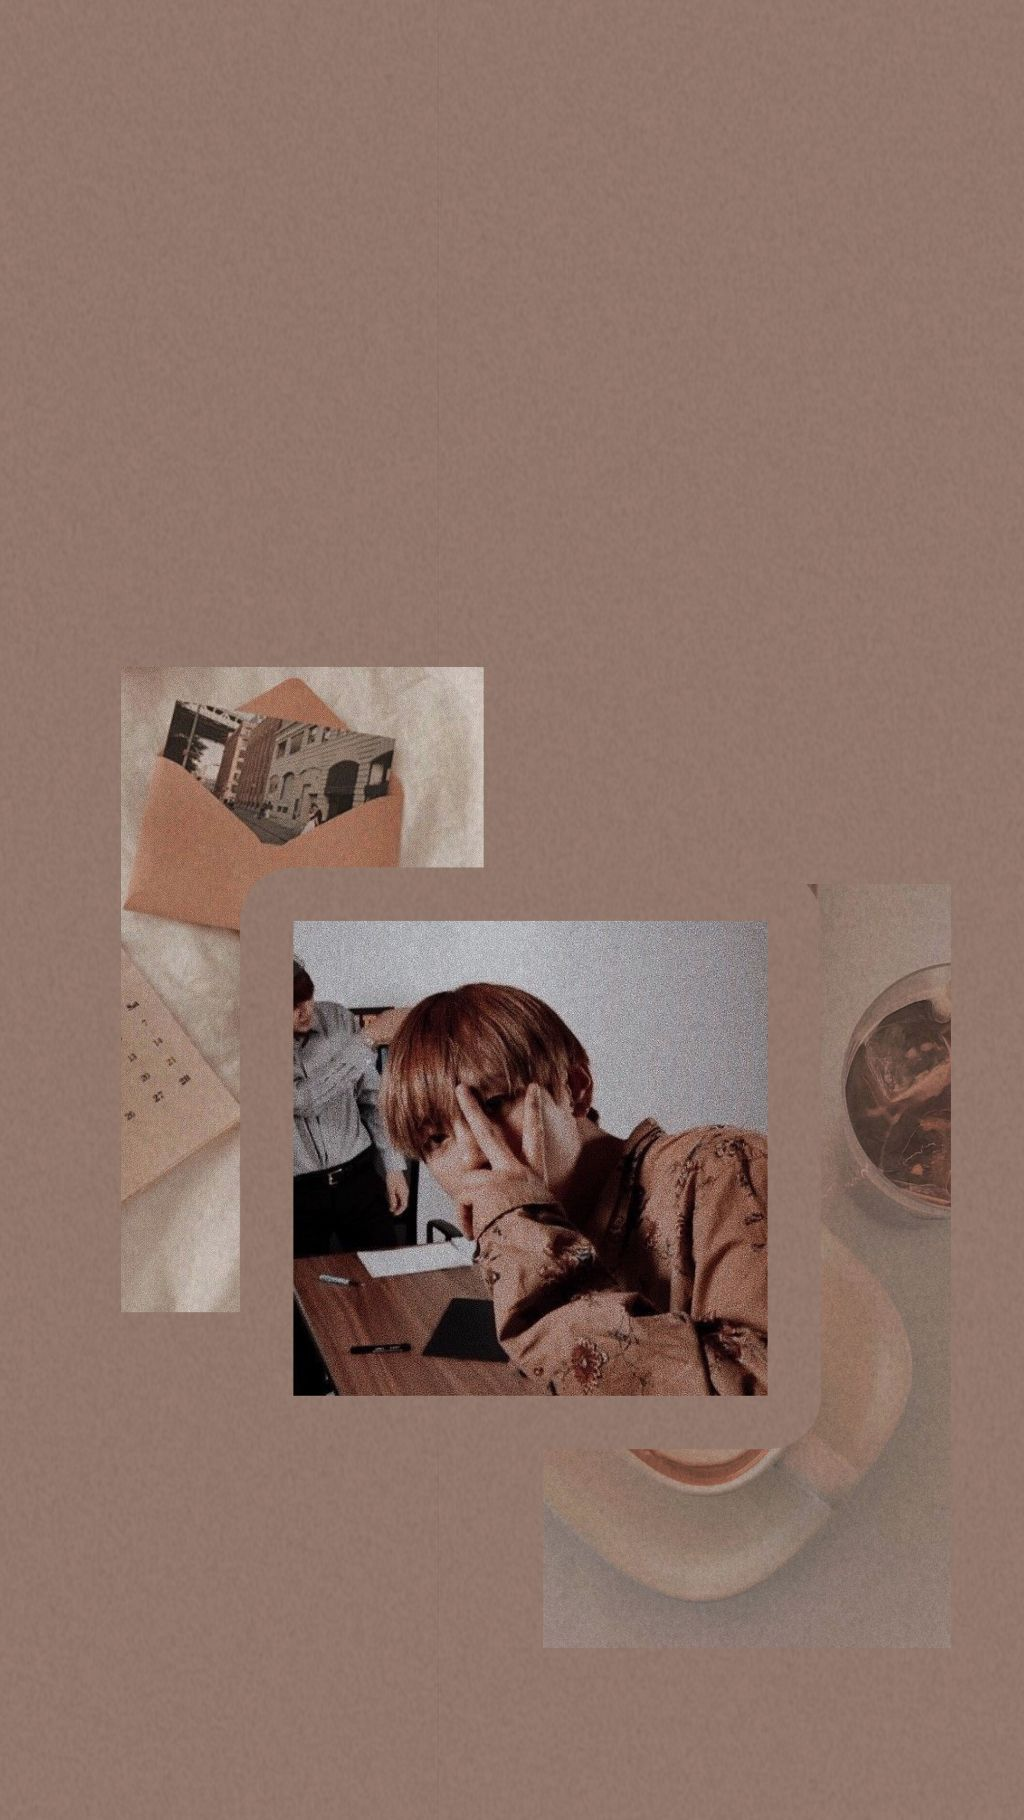 V Taehyung Bts Wallpaper Iphone Wallpaper Bts Kim Taehyung Wallpaper Bts Wallpaper